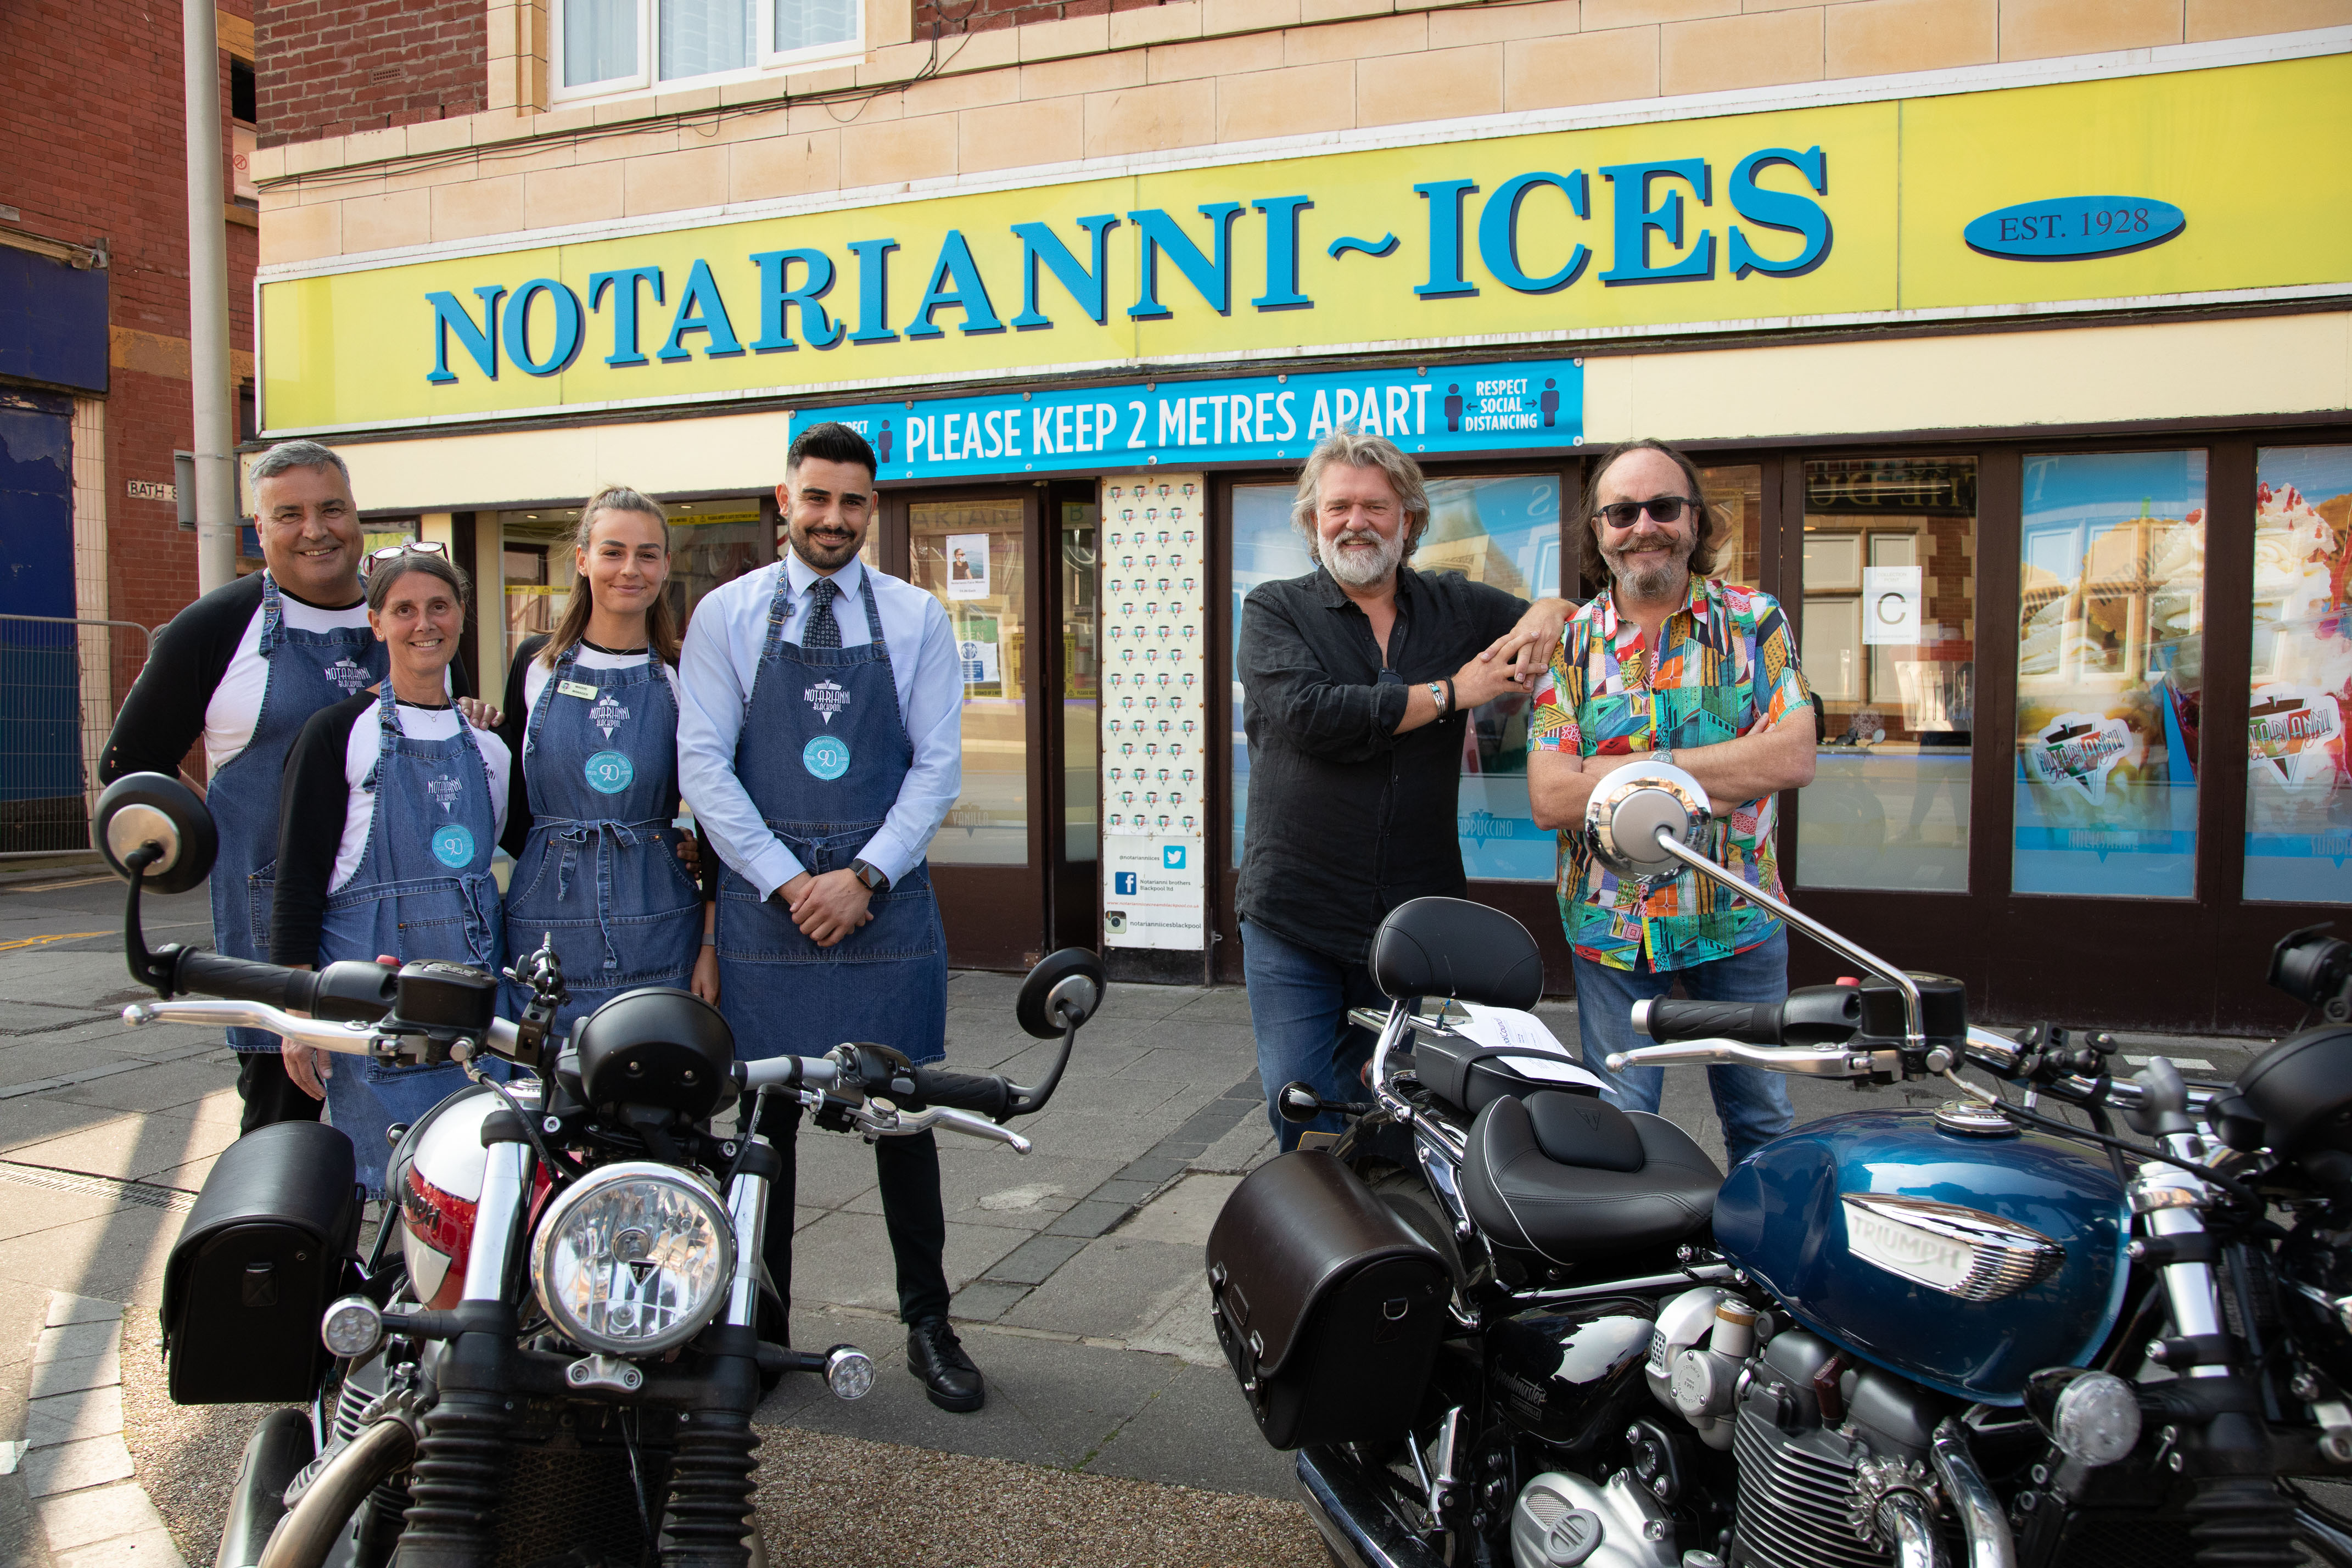 The Hairy Bikers visiting Notarianni Ices in Blackpool.